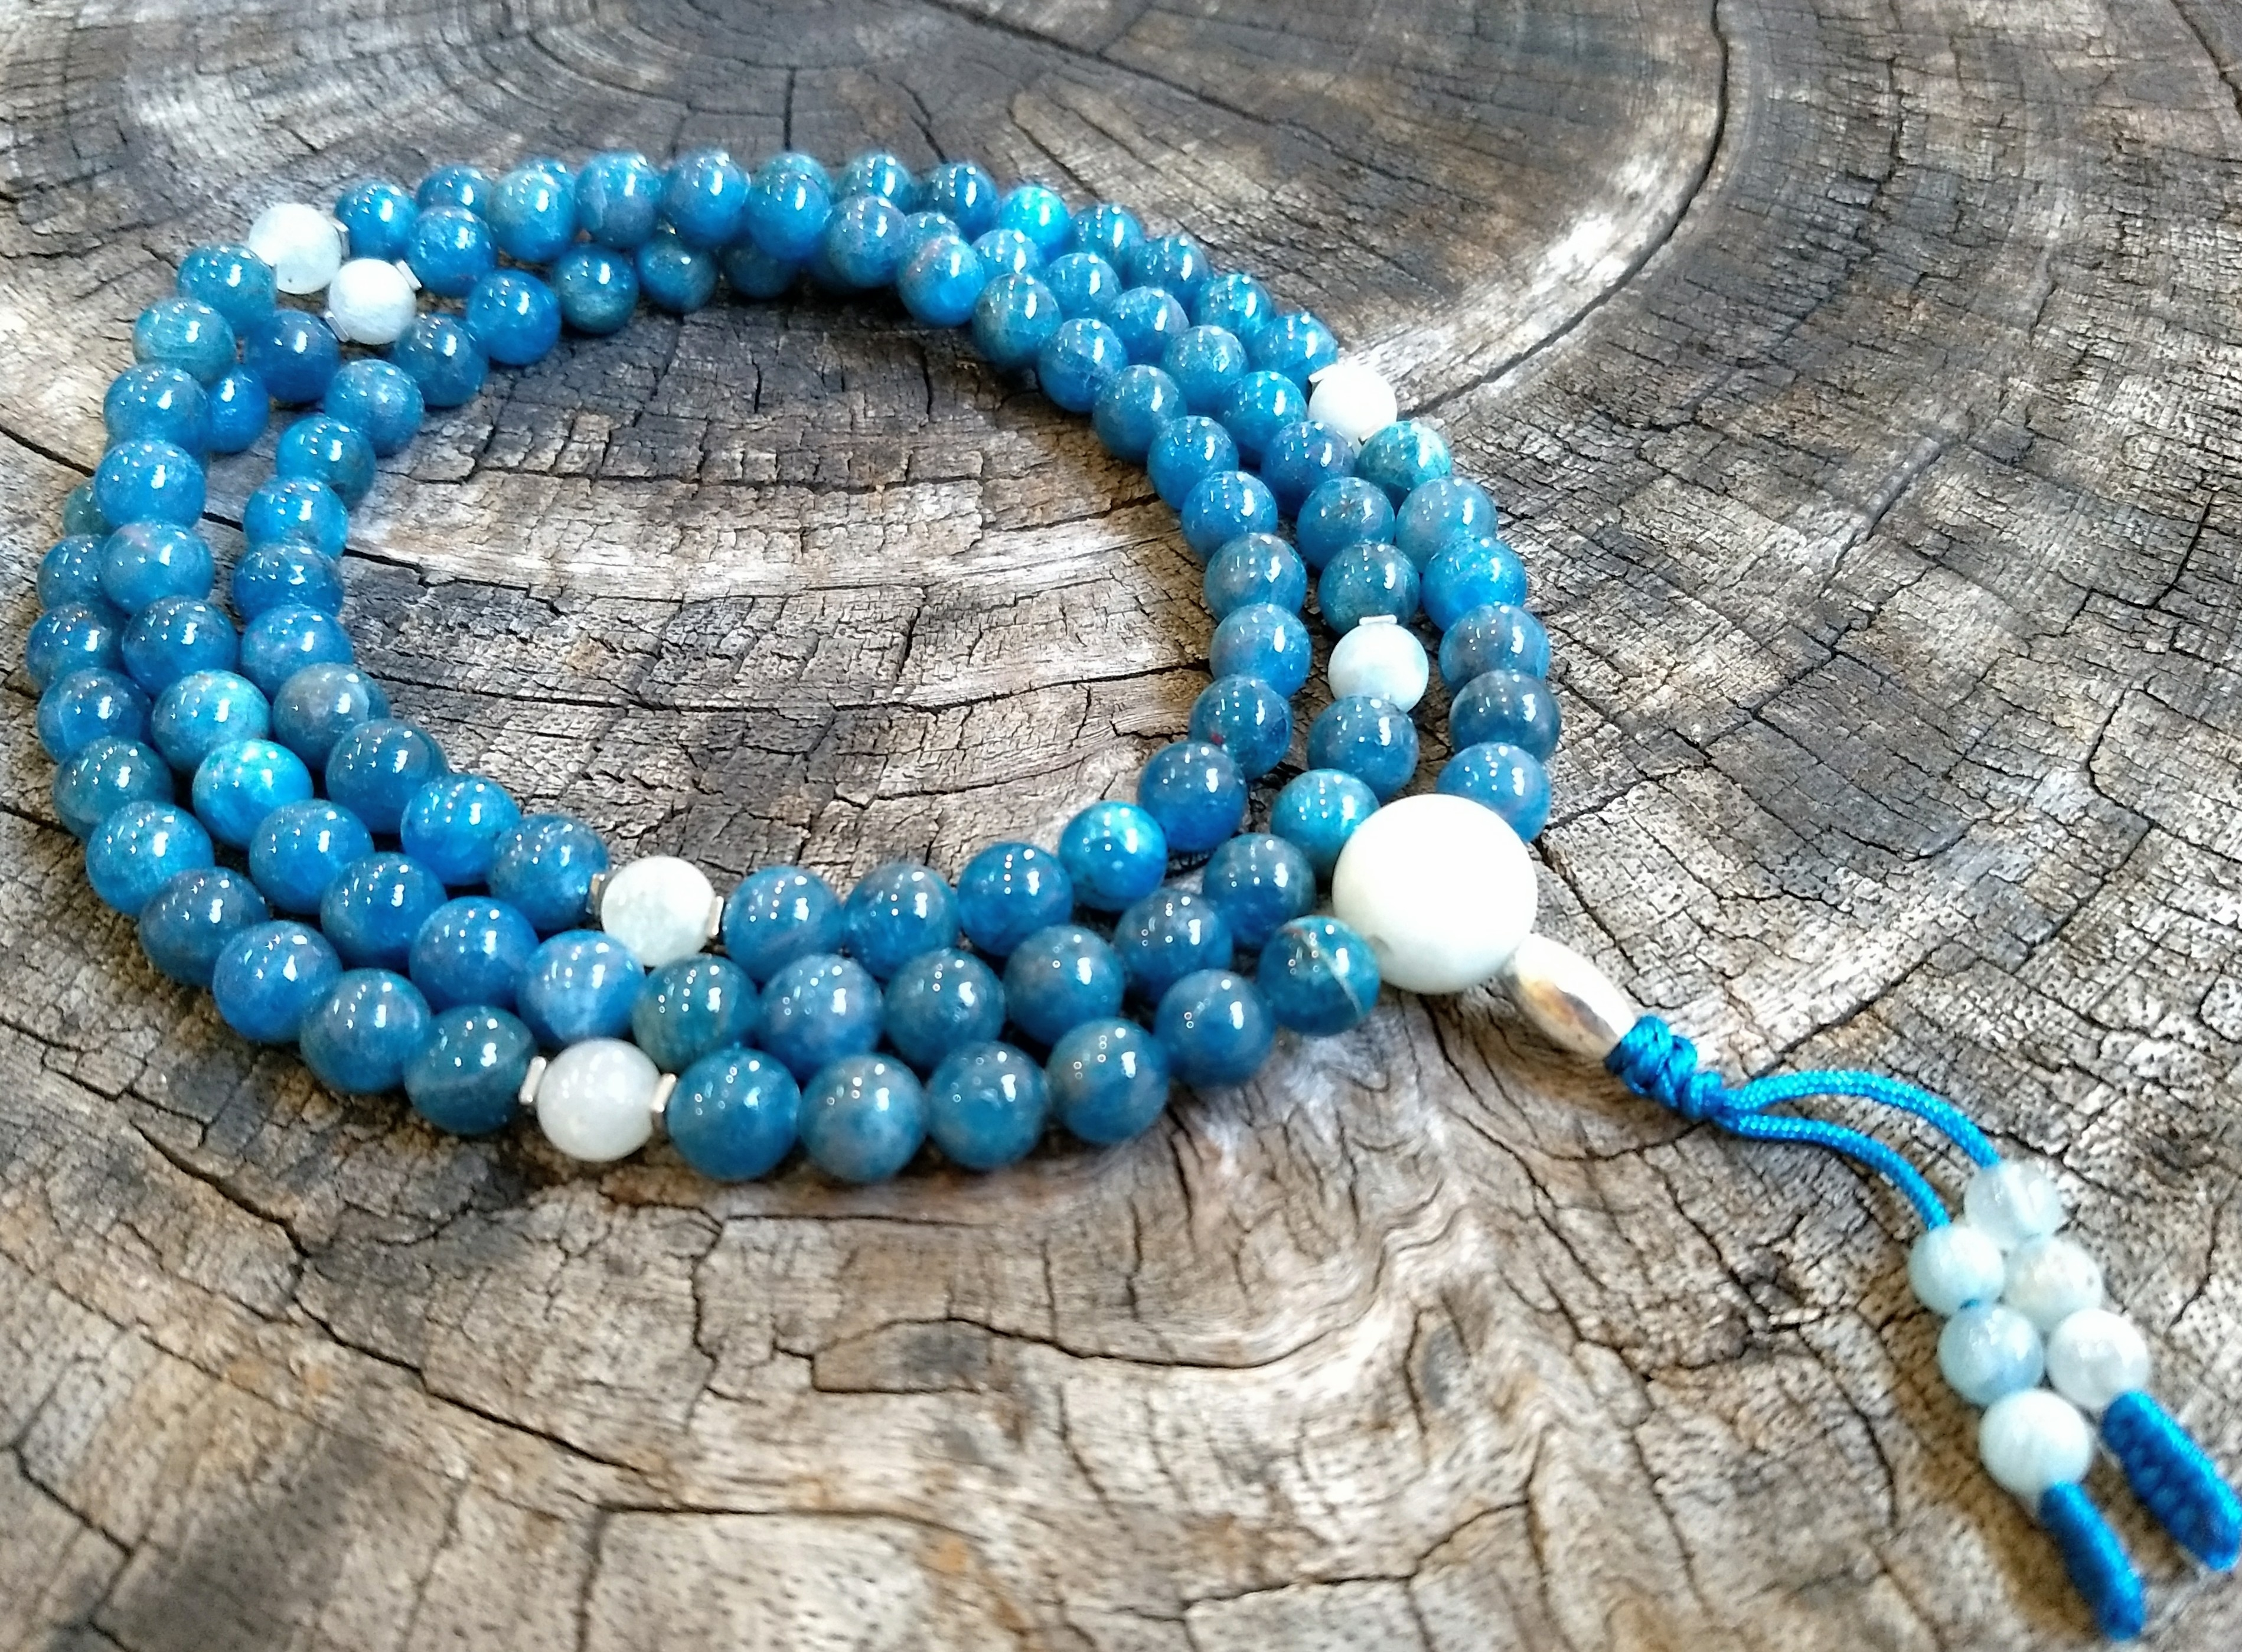 Blog - Metaphysical Descriptions of the Beads Used to Make